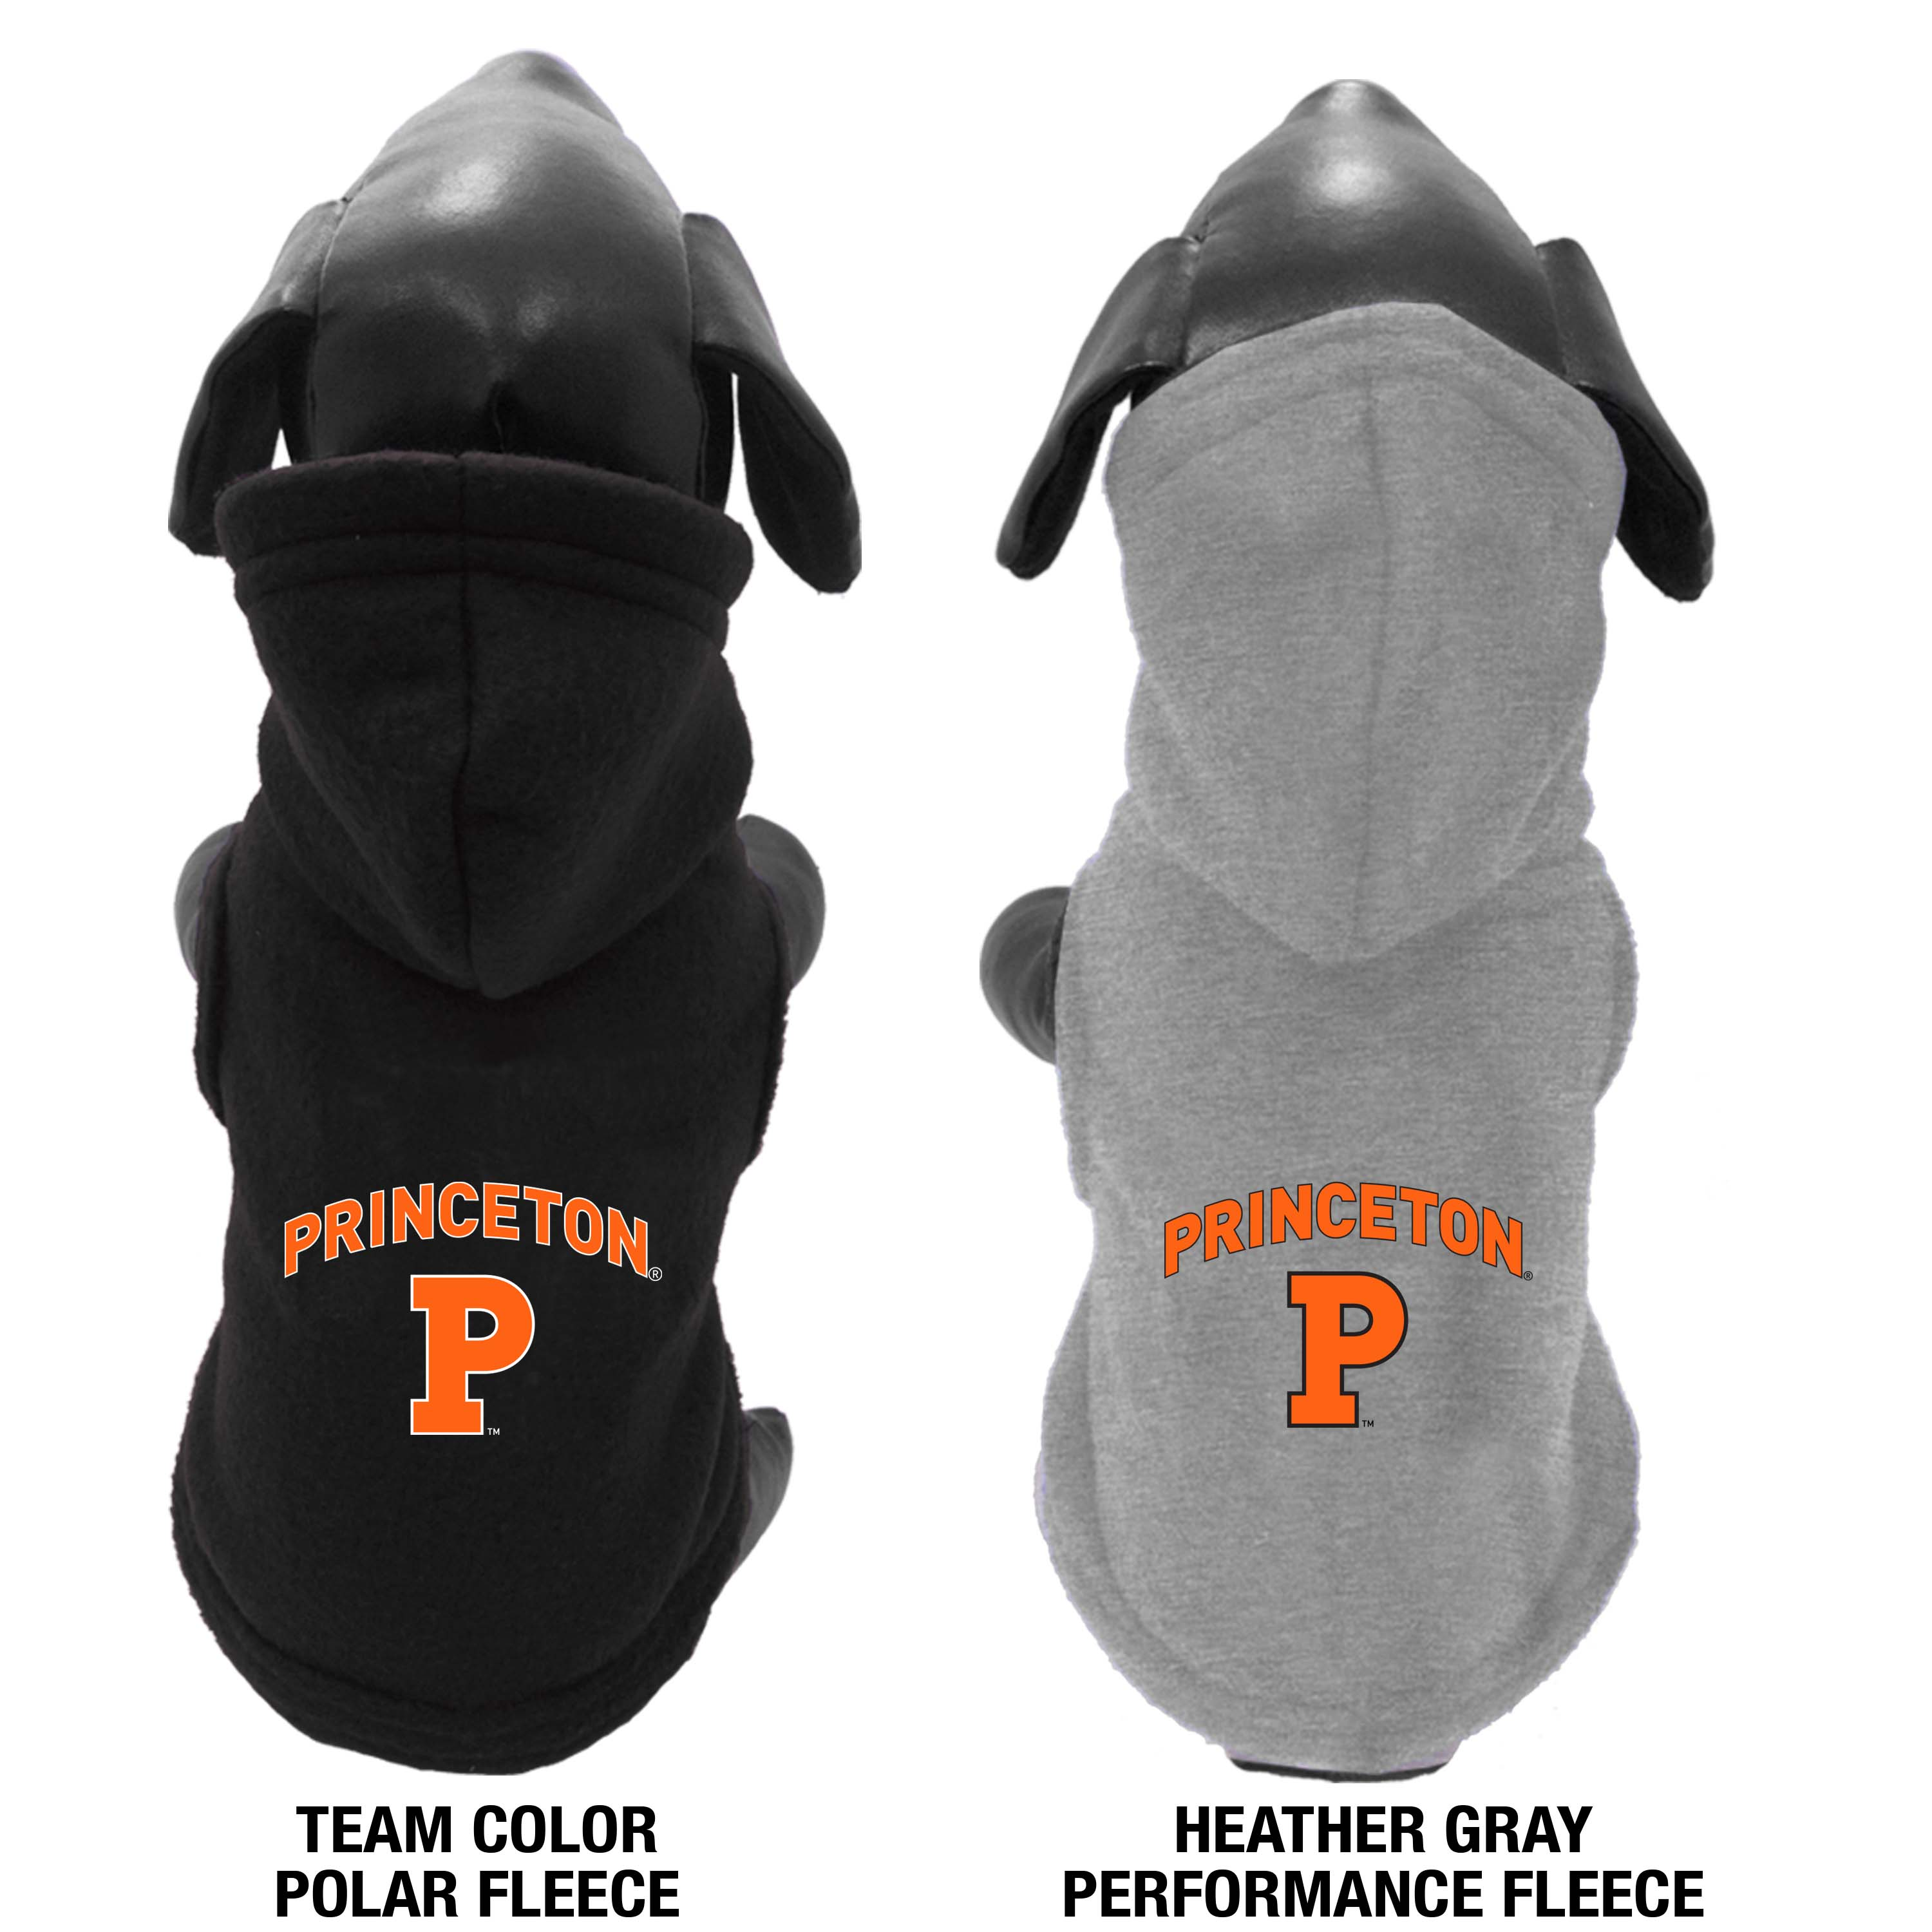 All Star Dogs: Princeton University Tigers Pet apparel and